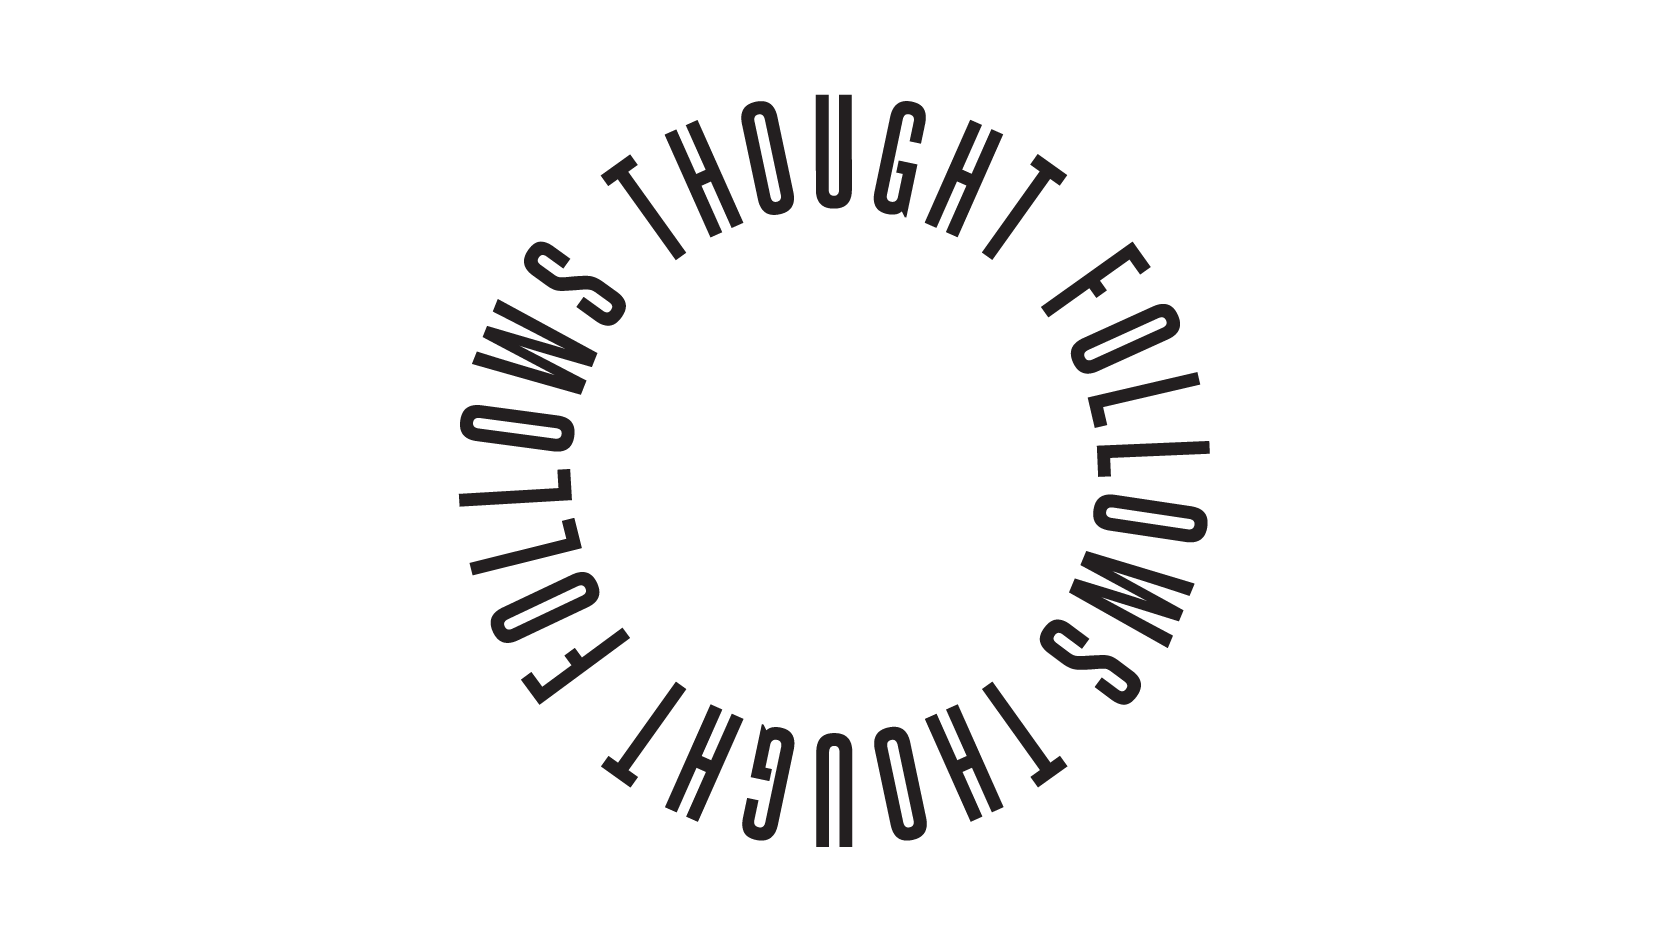 Thought follows thought